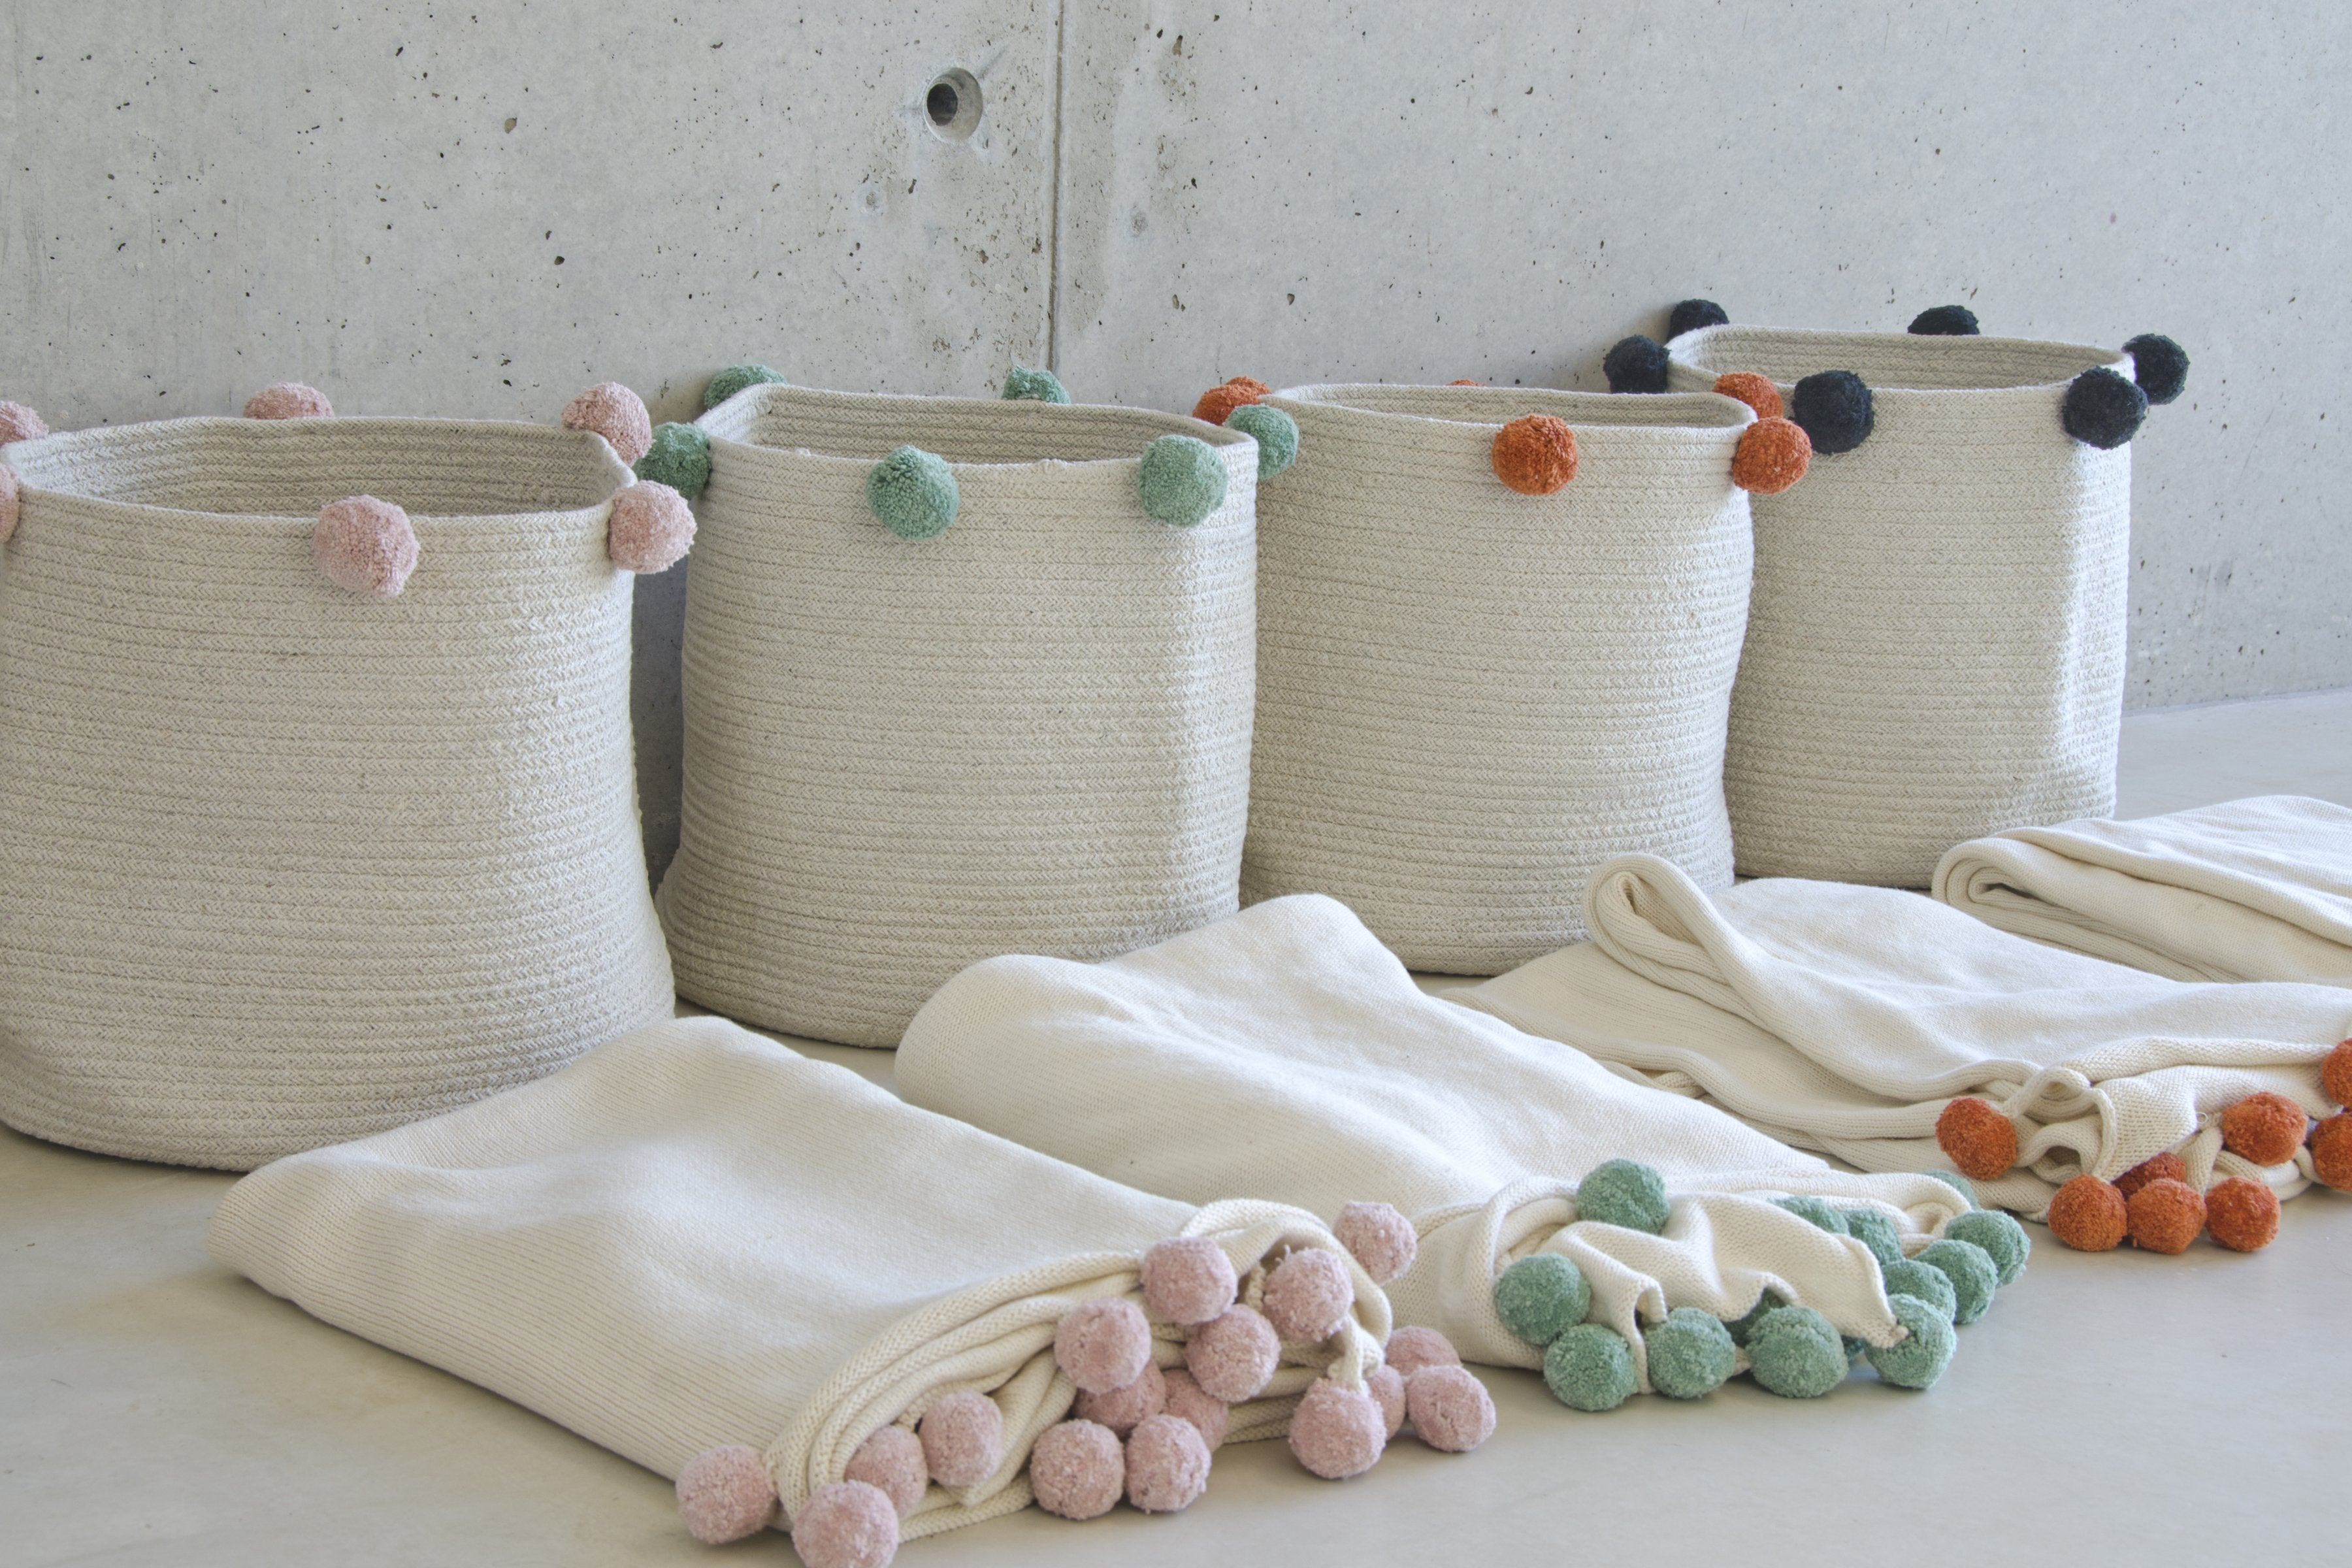 Bubbly Blanket in Natural & Terracota design by Lorena Canals